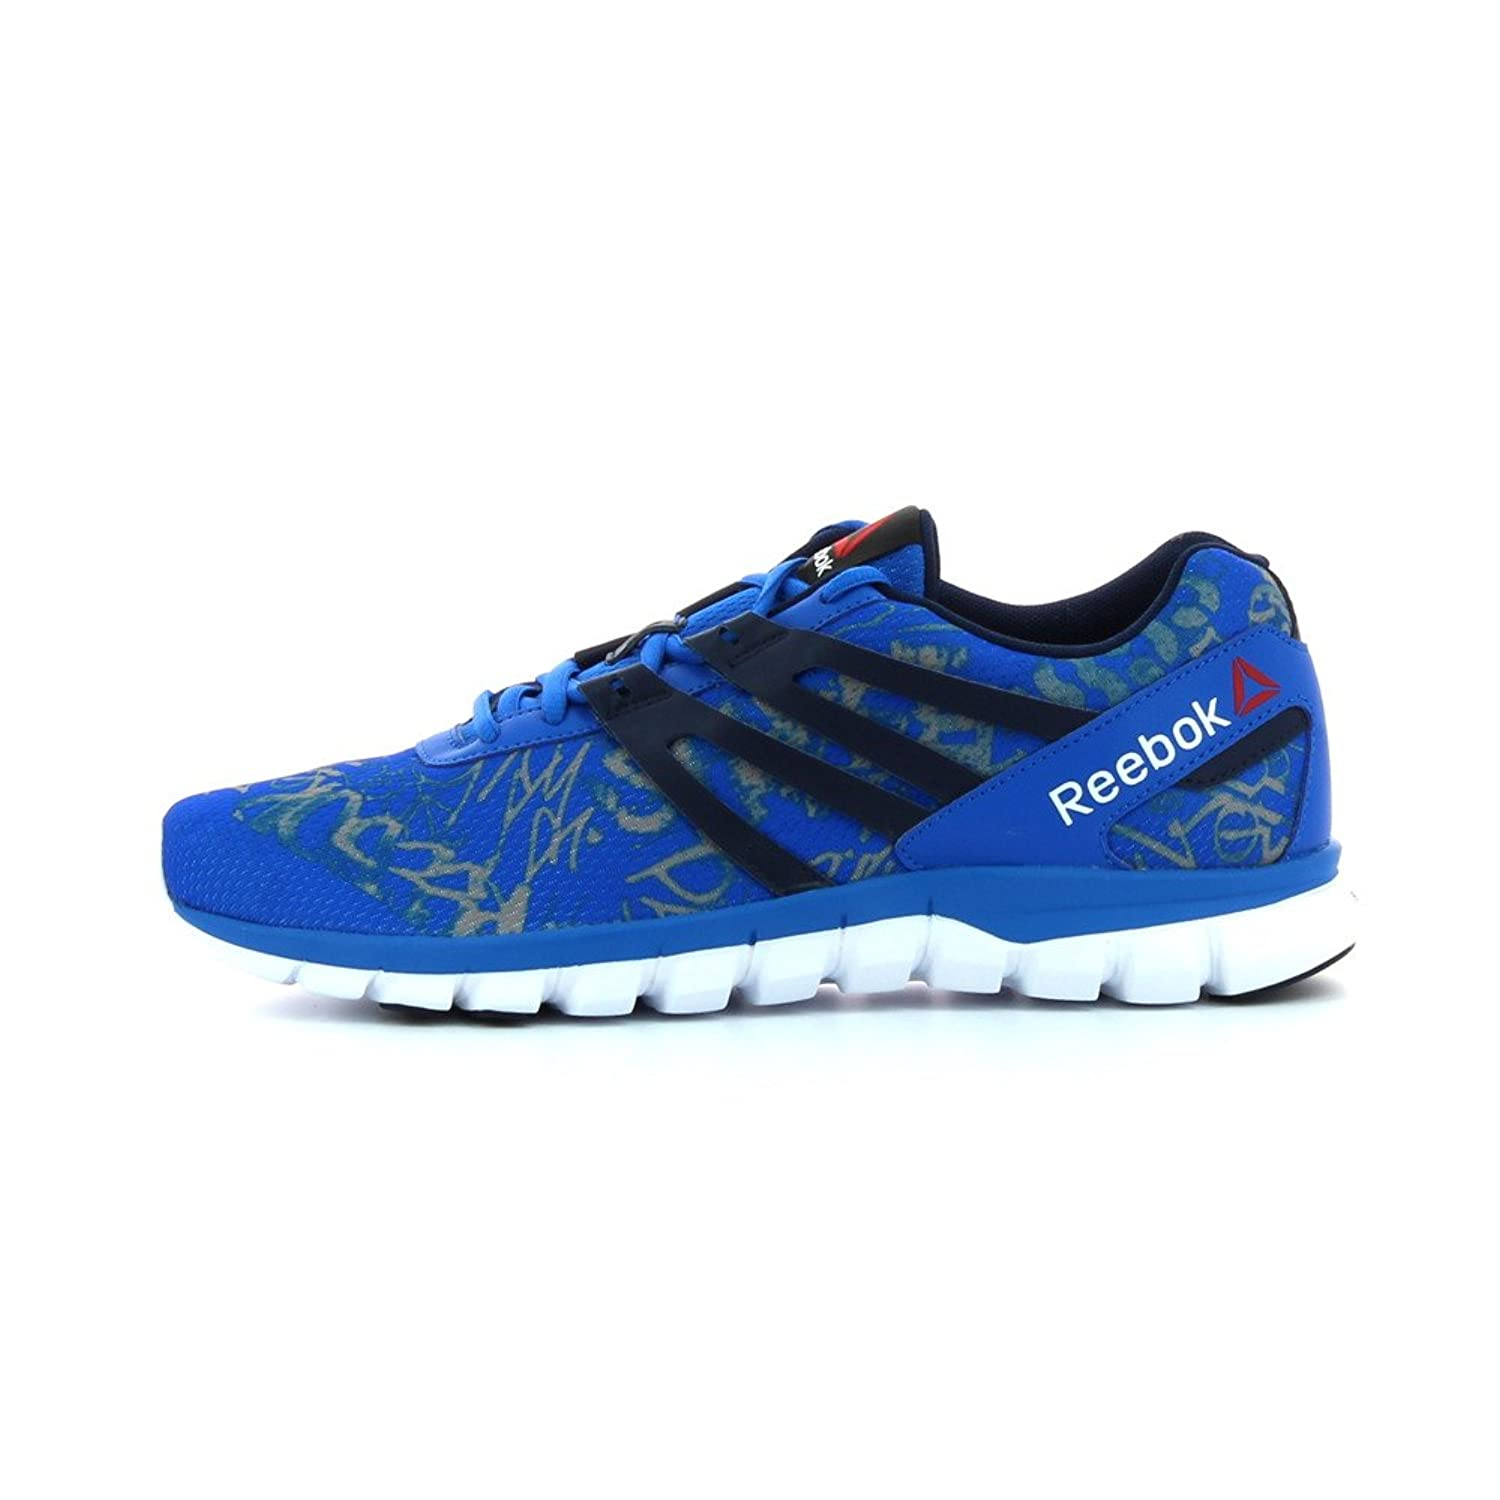 Reebok Sublite Zapatillas XT Zapatillas Cushion GRFTMT Varios Zapatillas XT de fd7693